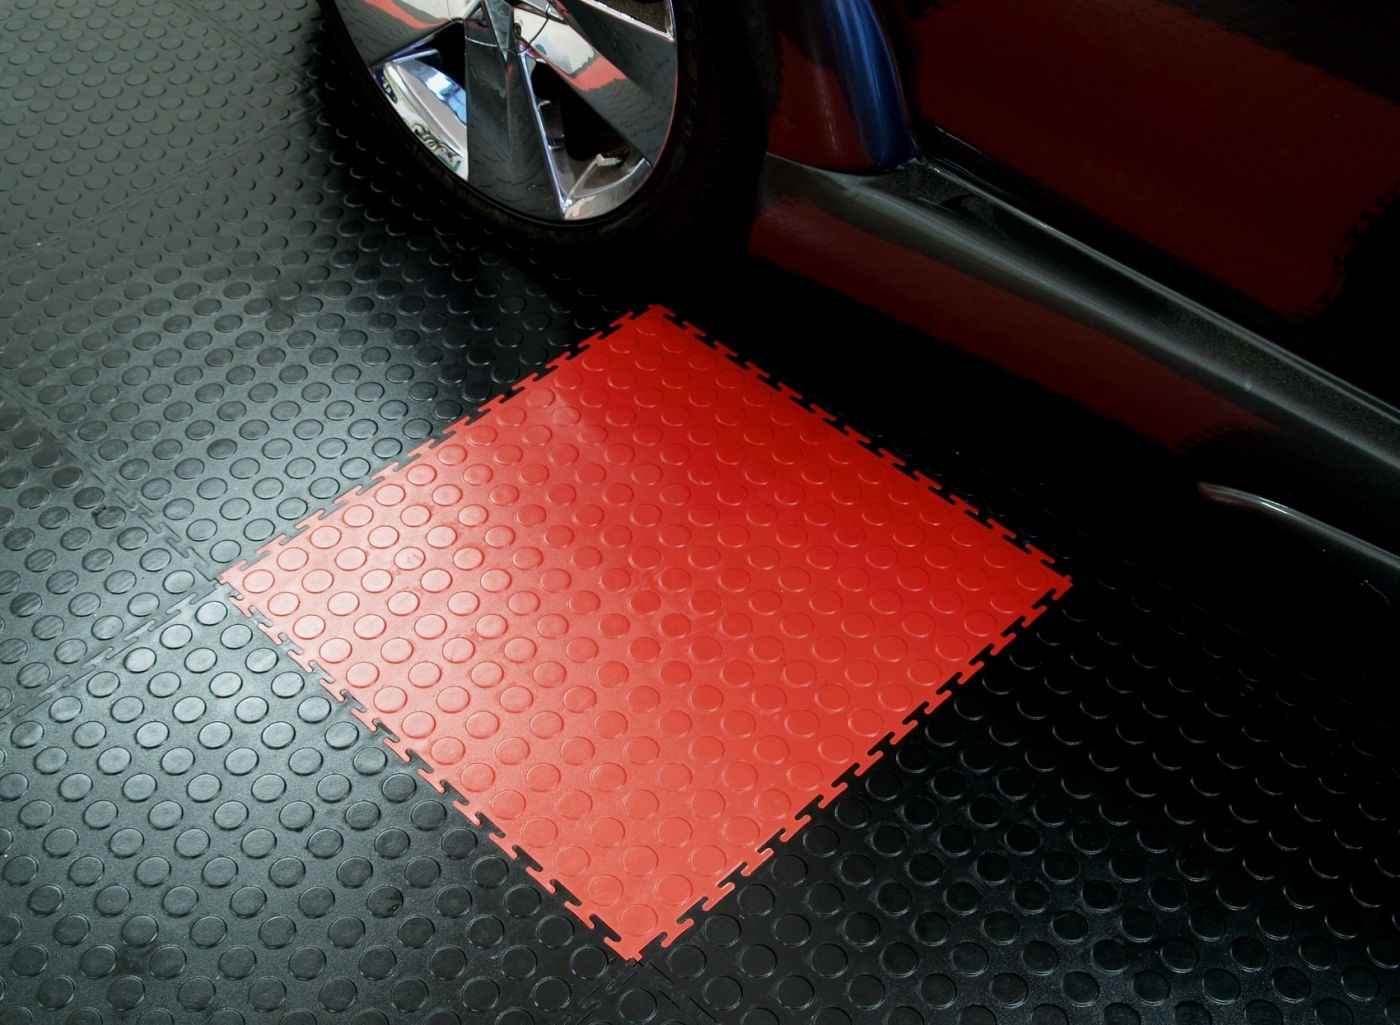 garage flooring pvc tiles floor paint alternative. Black Bedroom Furniture Sets. Home Design Ideas